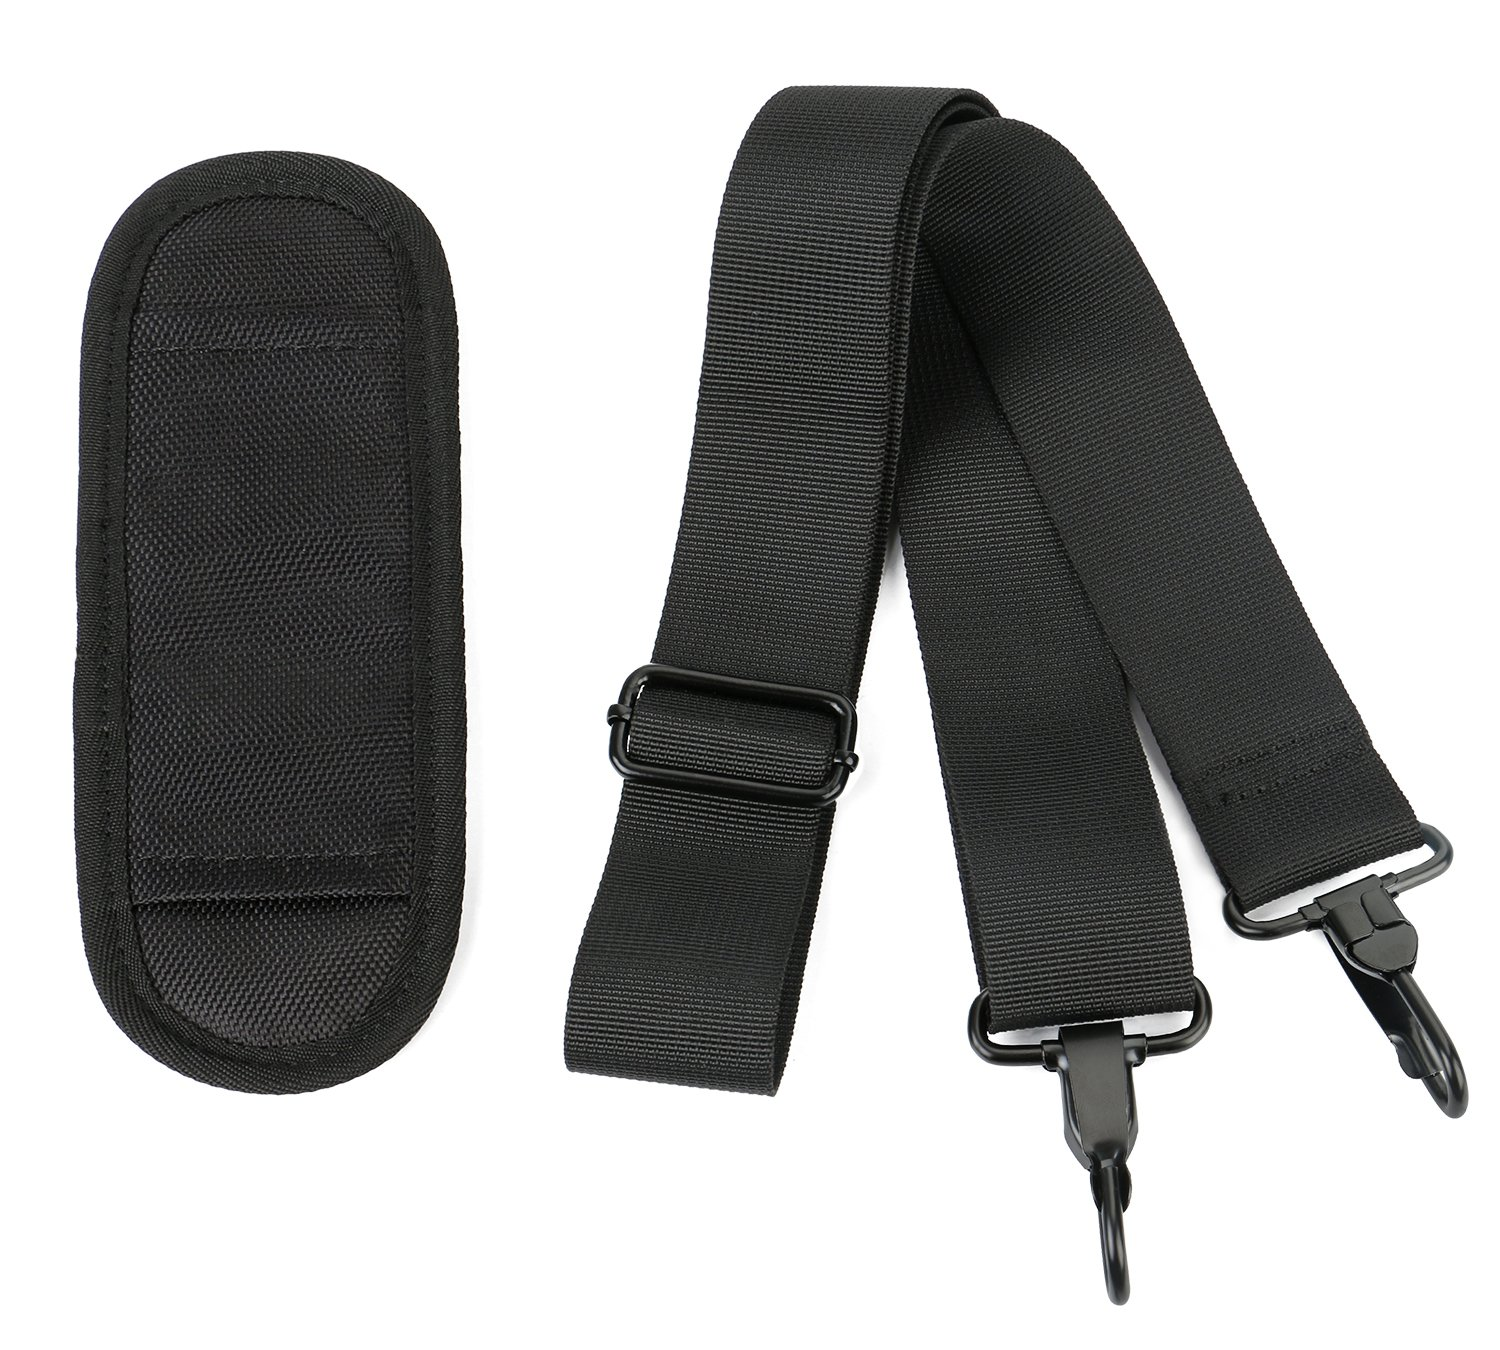 Laptop Shoulder Strap, Adjustable Bag Strap with Pad for Briefcase - Black by Ytonet (Image #5)